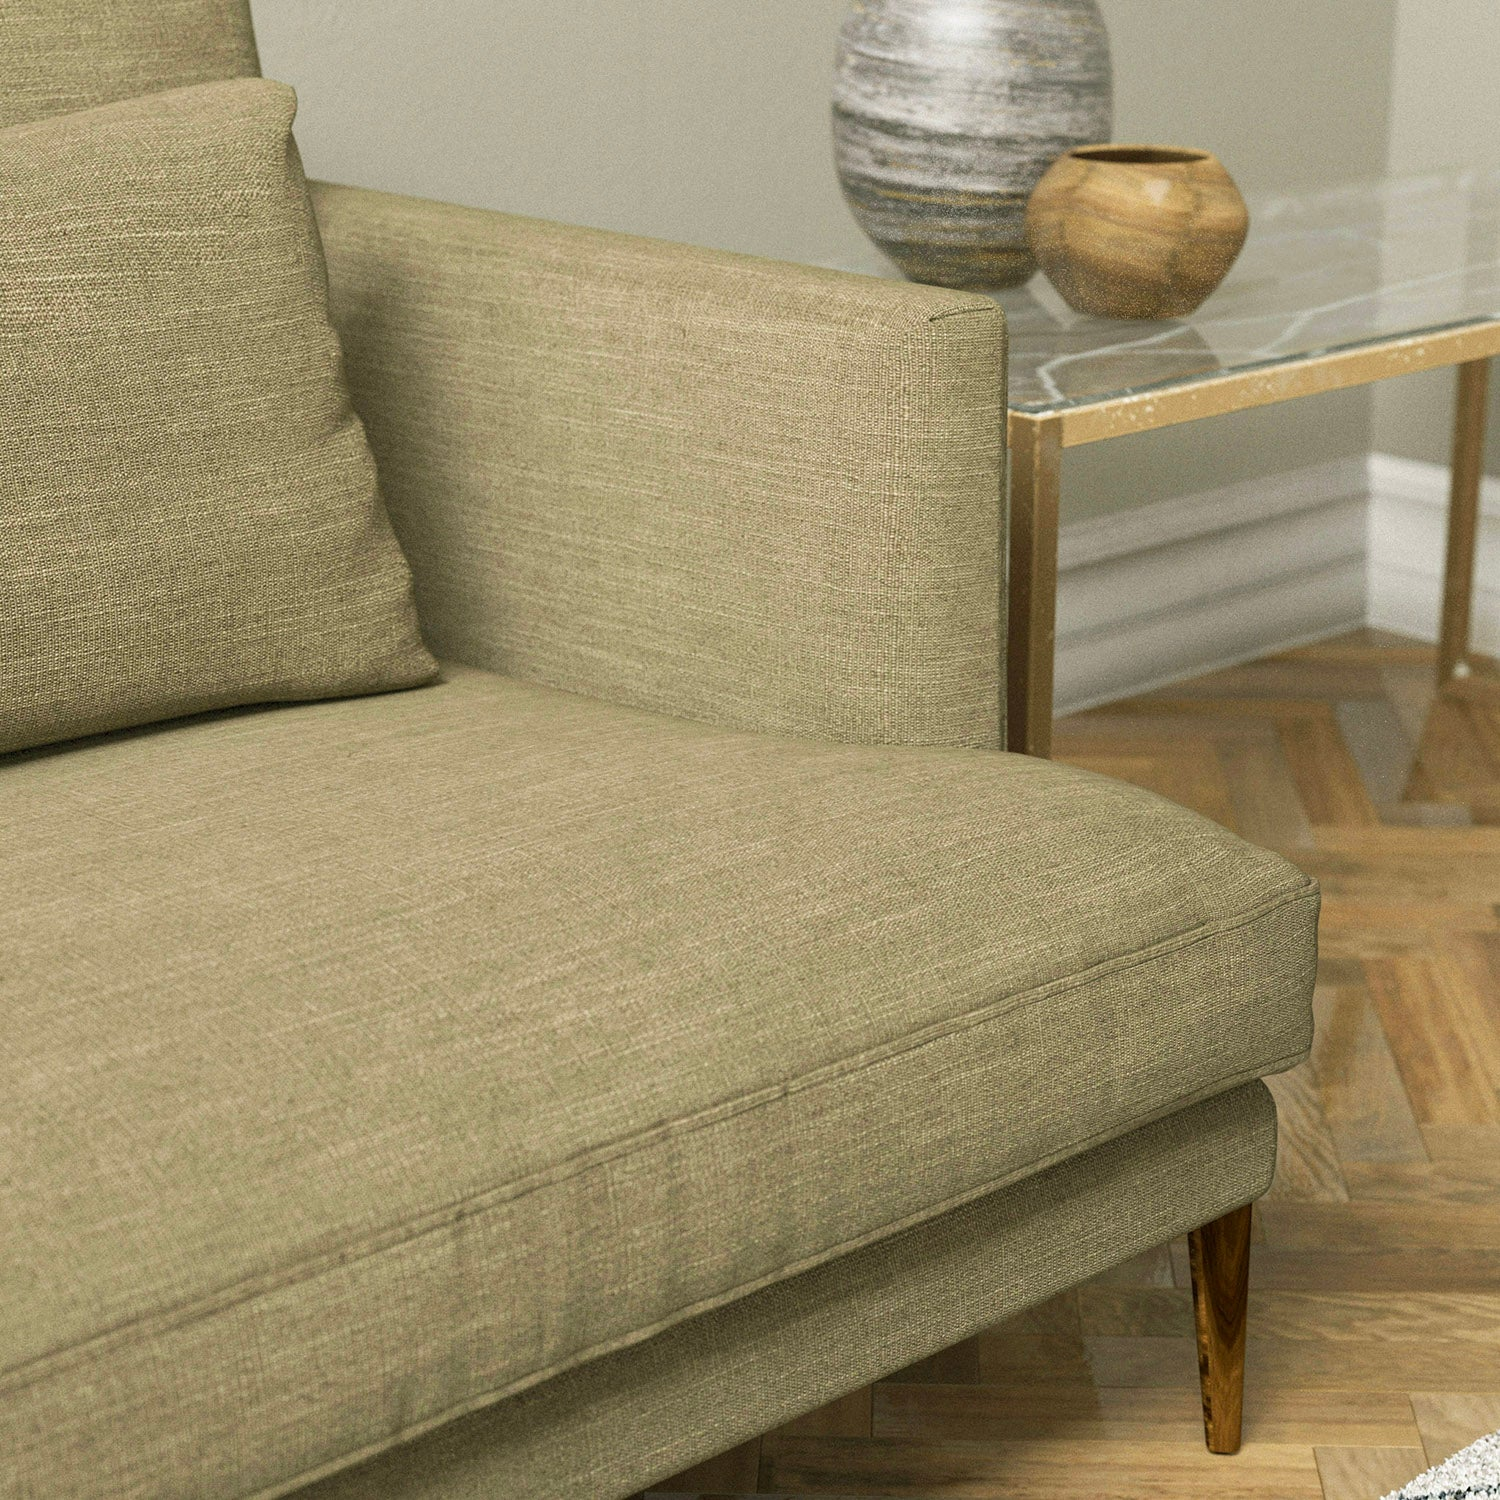 Sofa upholstered in a plain golden beige linen blend fabric